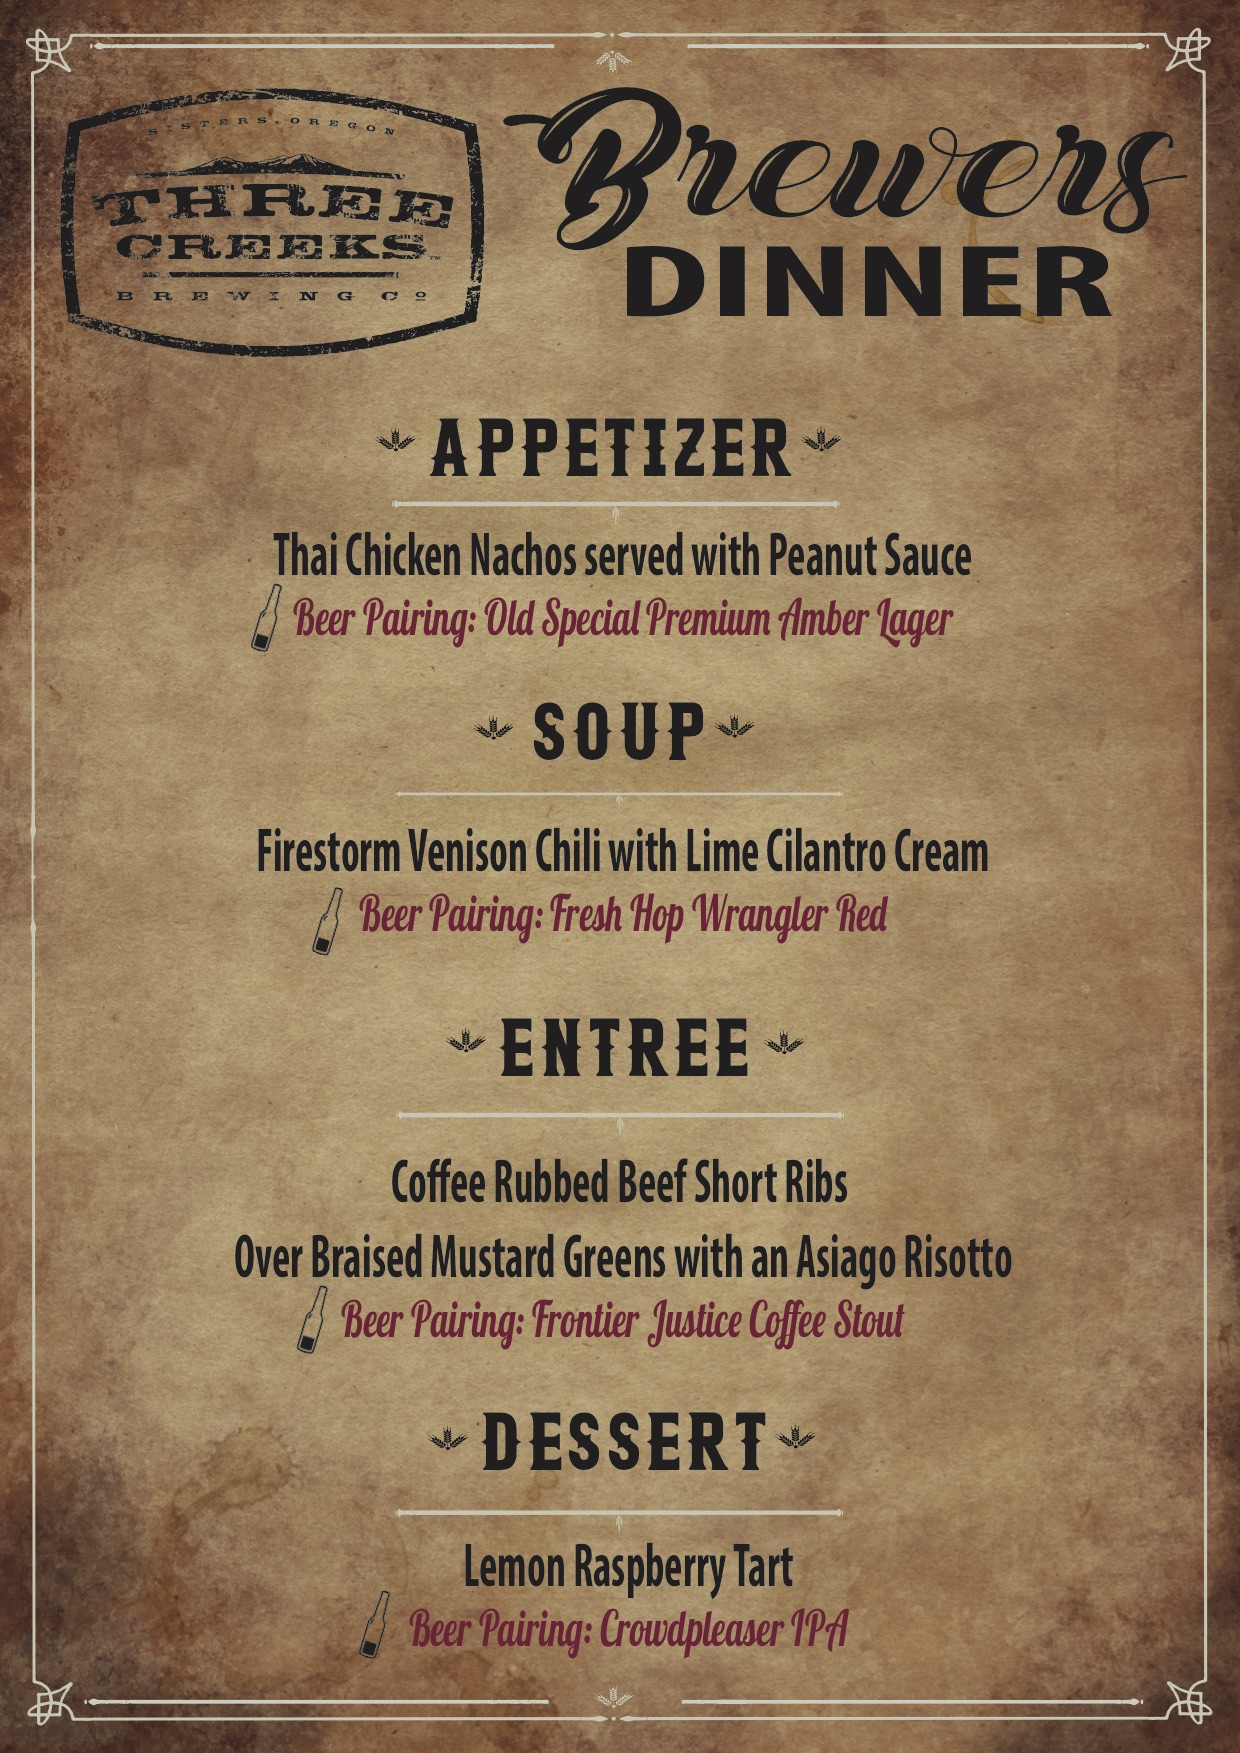 Brewers Dinner Poster 2 copy.jpg